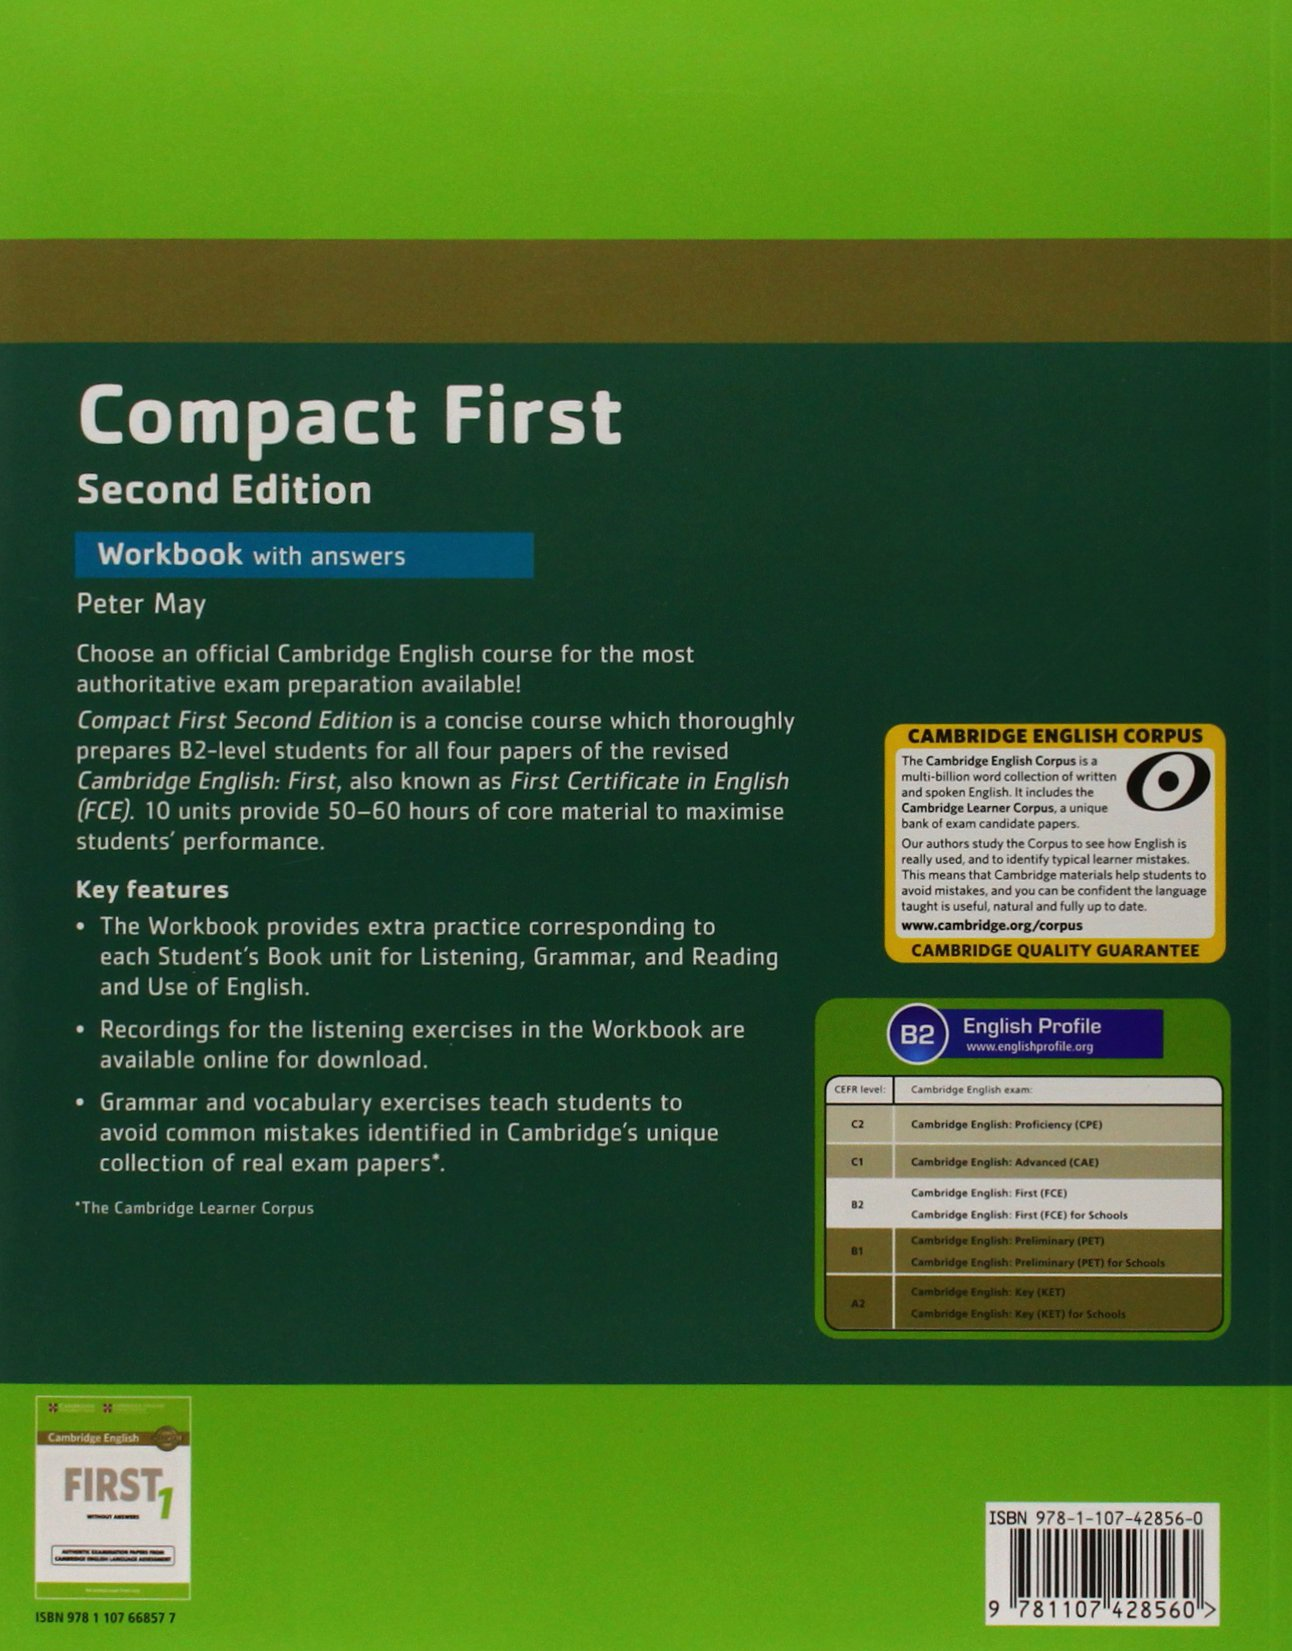 Compact First Workbook with Answers with Audio Second Edition: Amazon.es: May,Peter: Libros en idiomas extranjeros